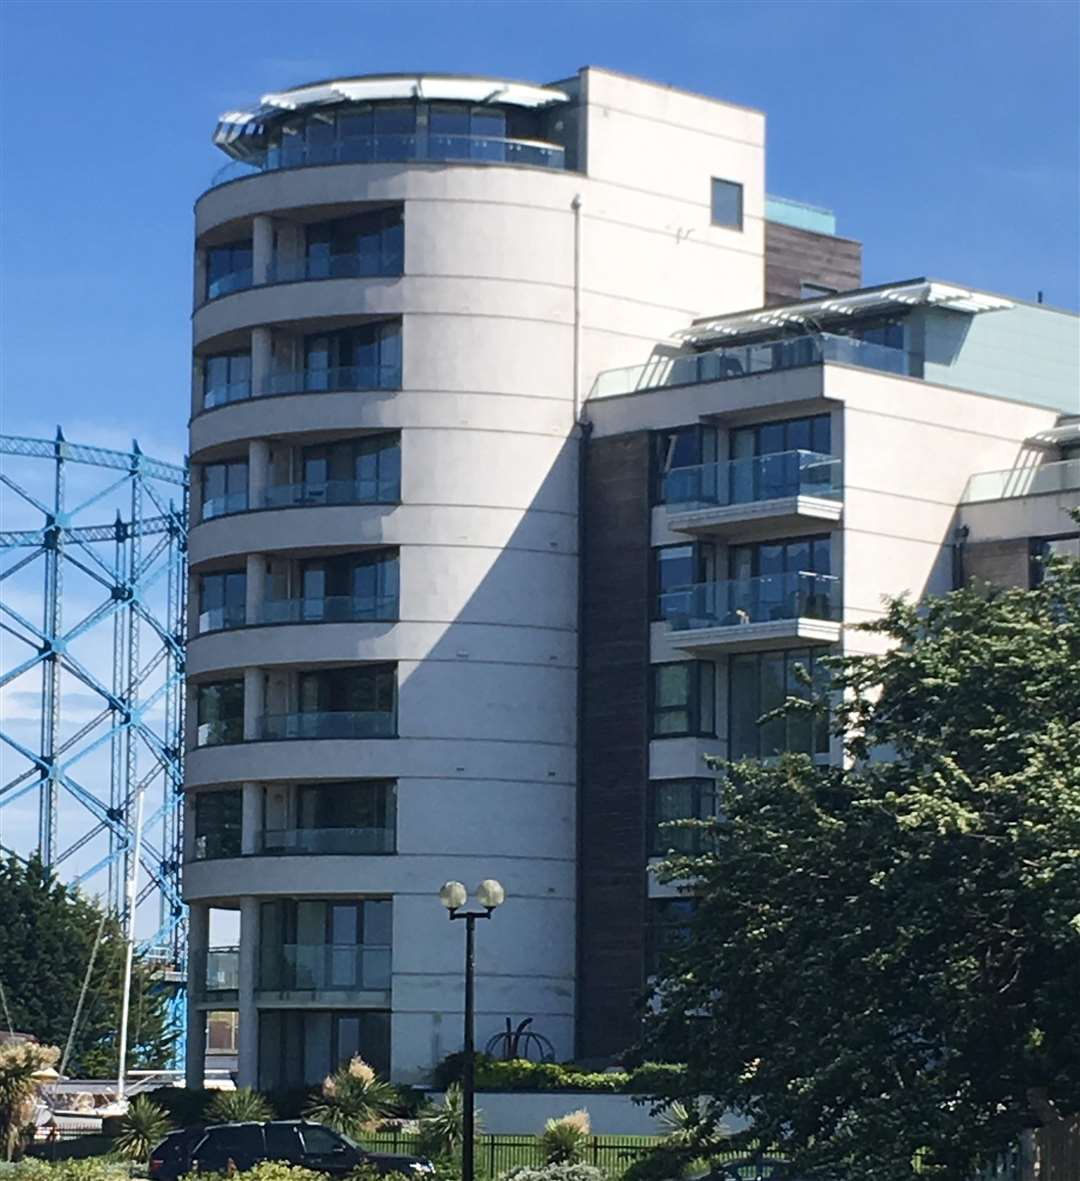 Medway Council has served an improvement notice on the building's owners